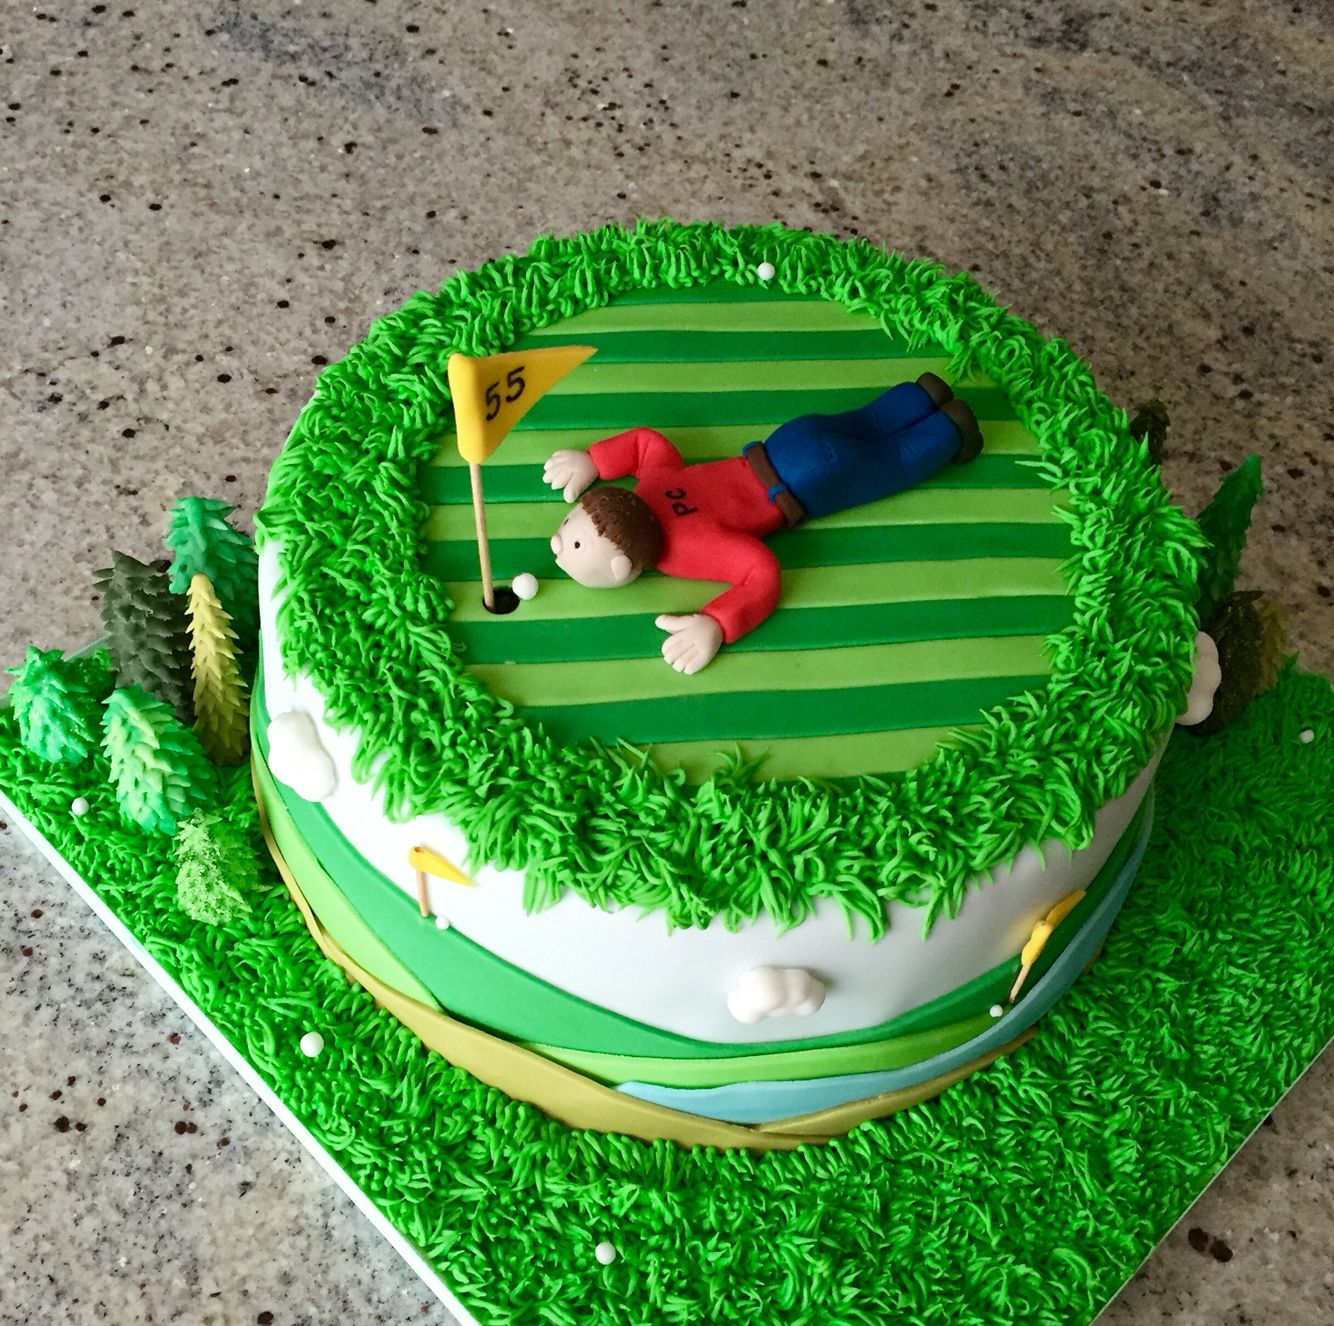 Another Golf Cake With A Sense Of Humour Great Present